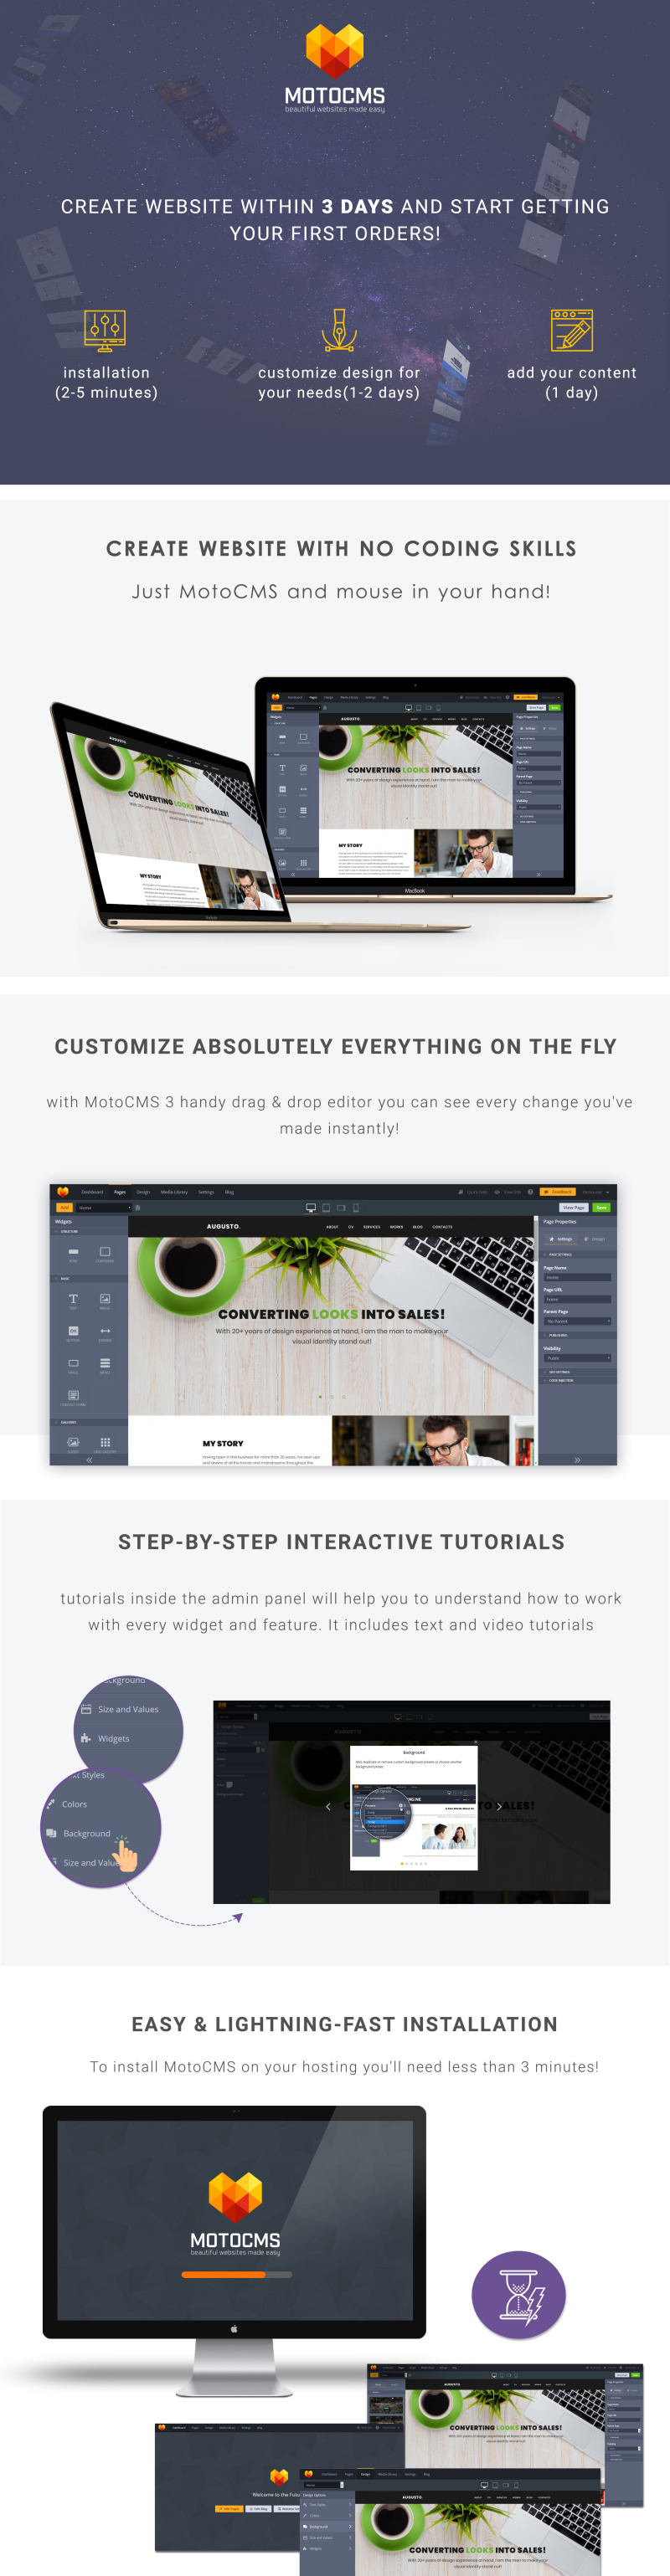 Augusto - Freelance Designer Moto CMS 3 Template - Features Image 1